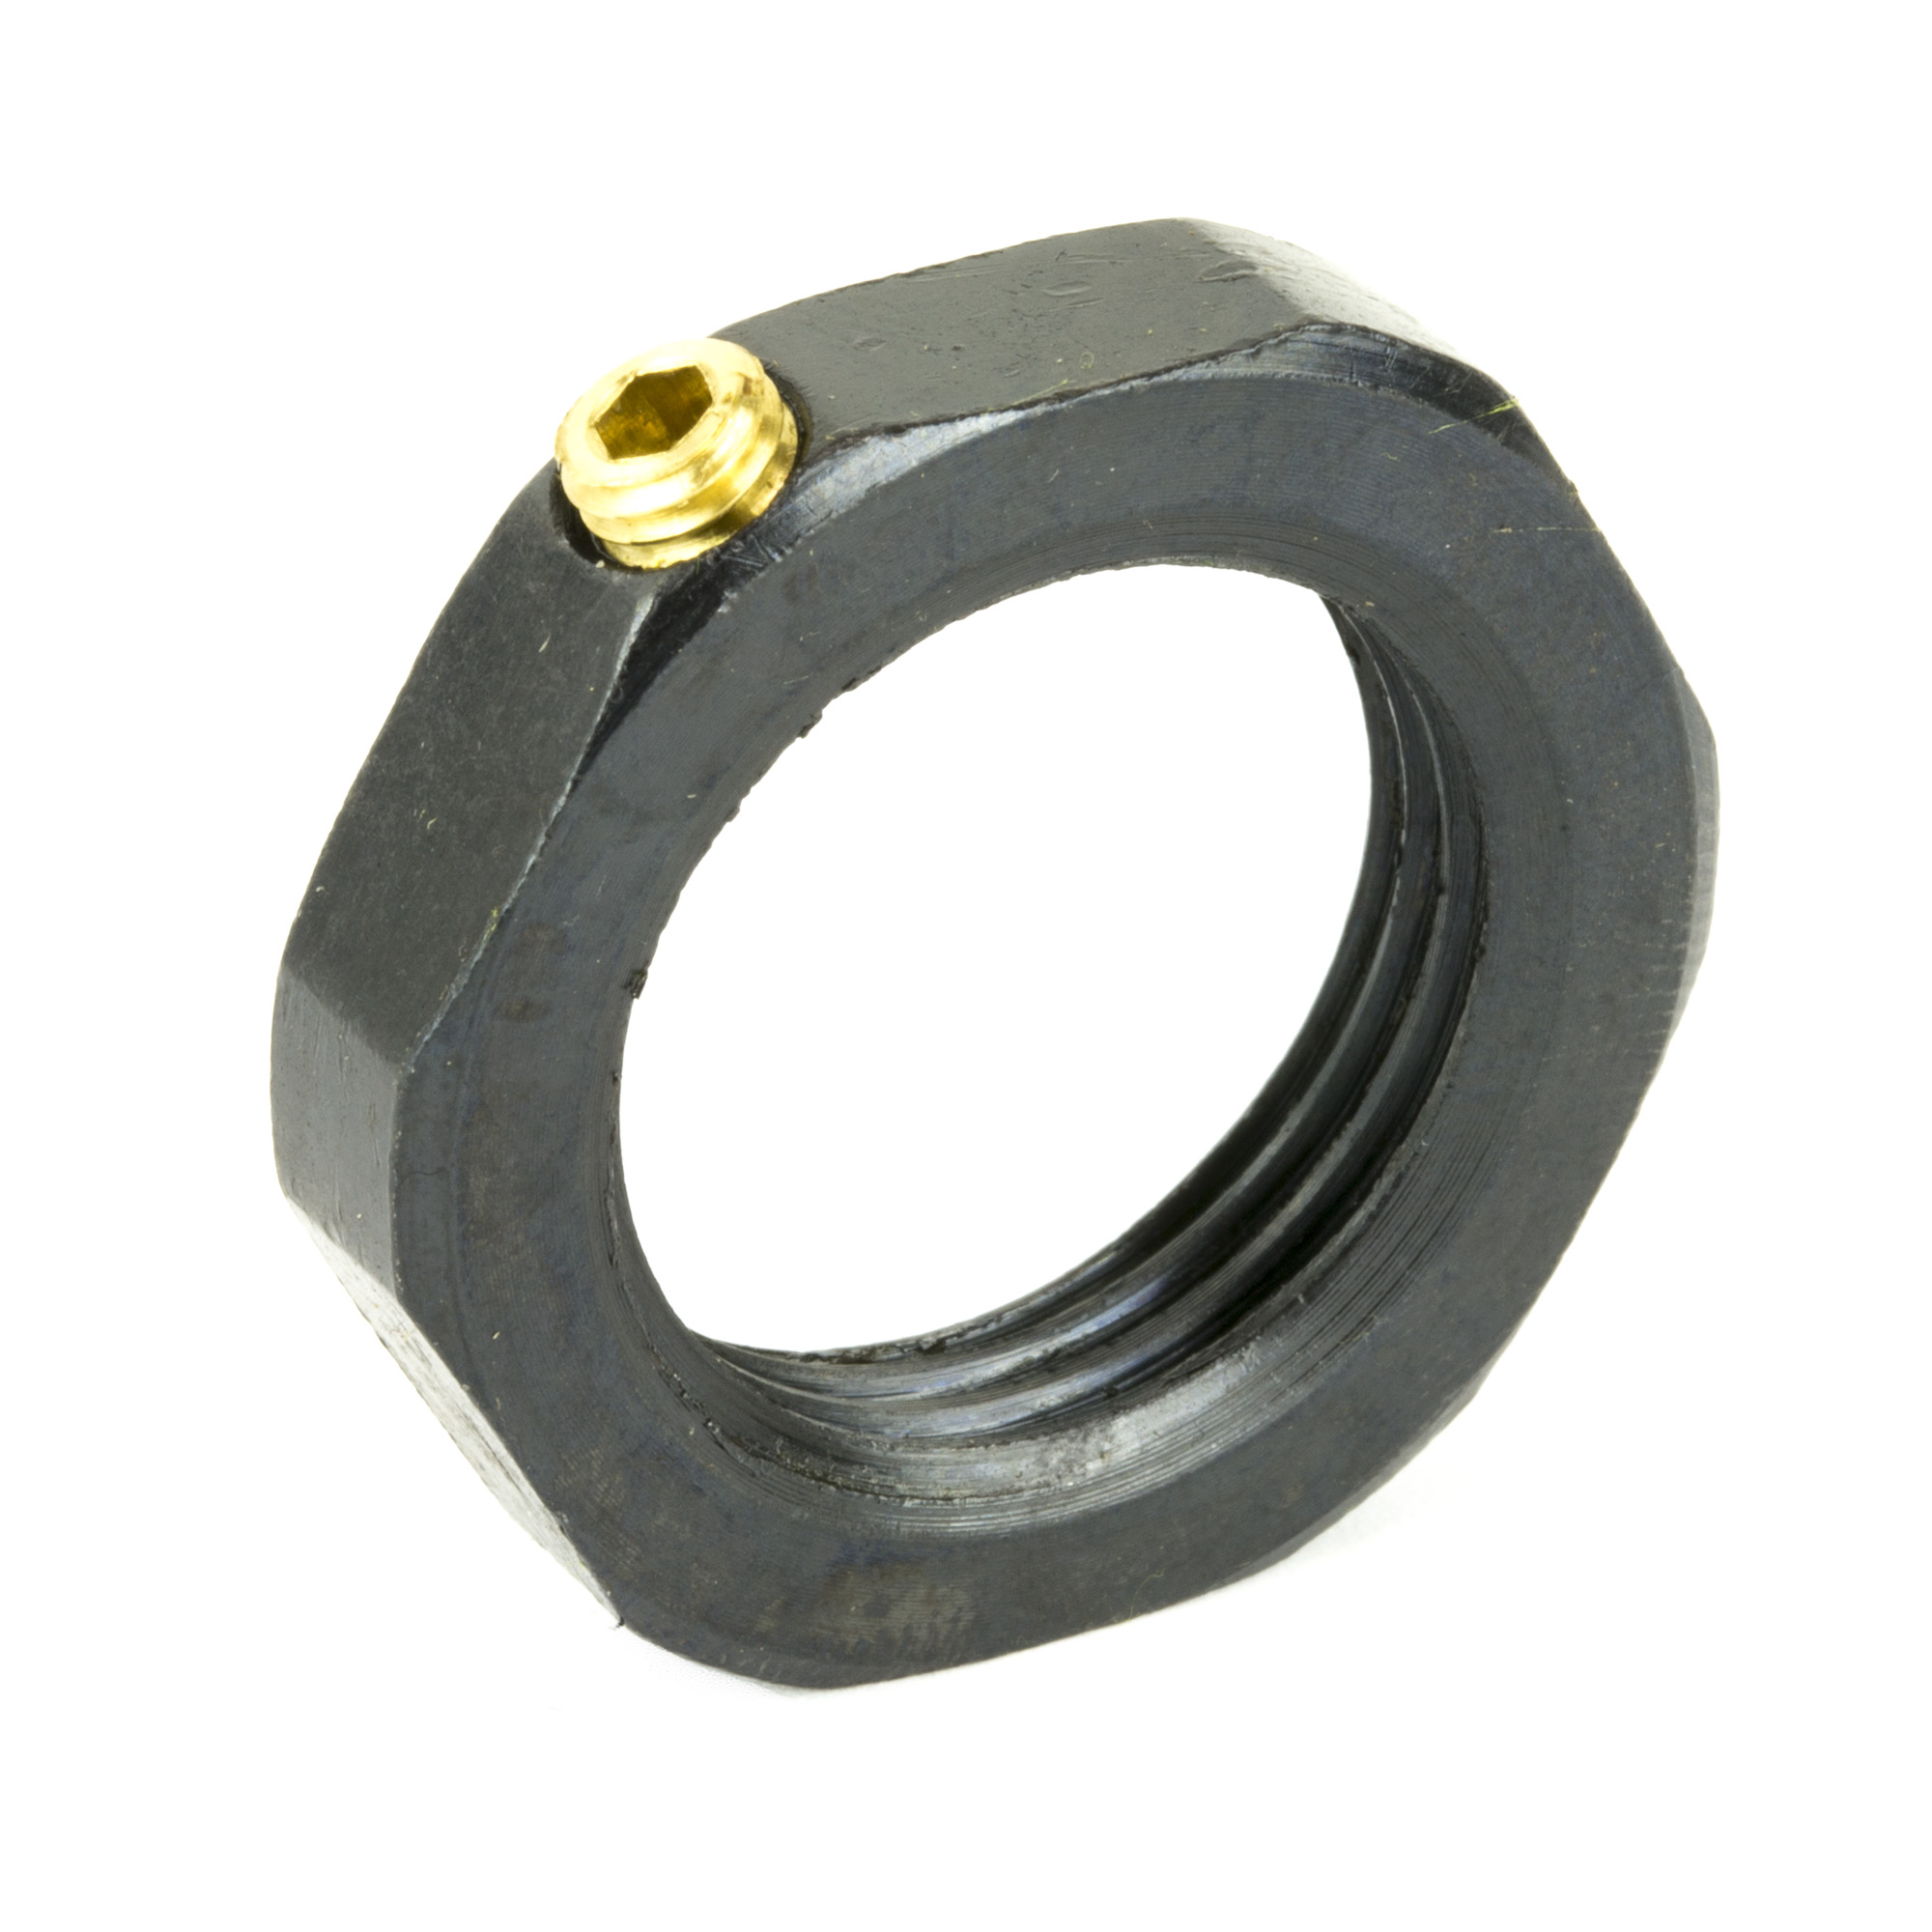 These steel locking rings allow a reloader to set up dies and lock them in place so they can be removed and replaced without having to recalibrate. They fit on standard 7/8-inch-14 threaded dies.